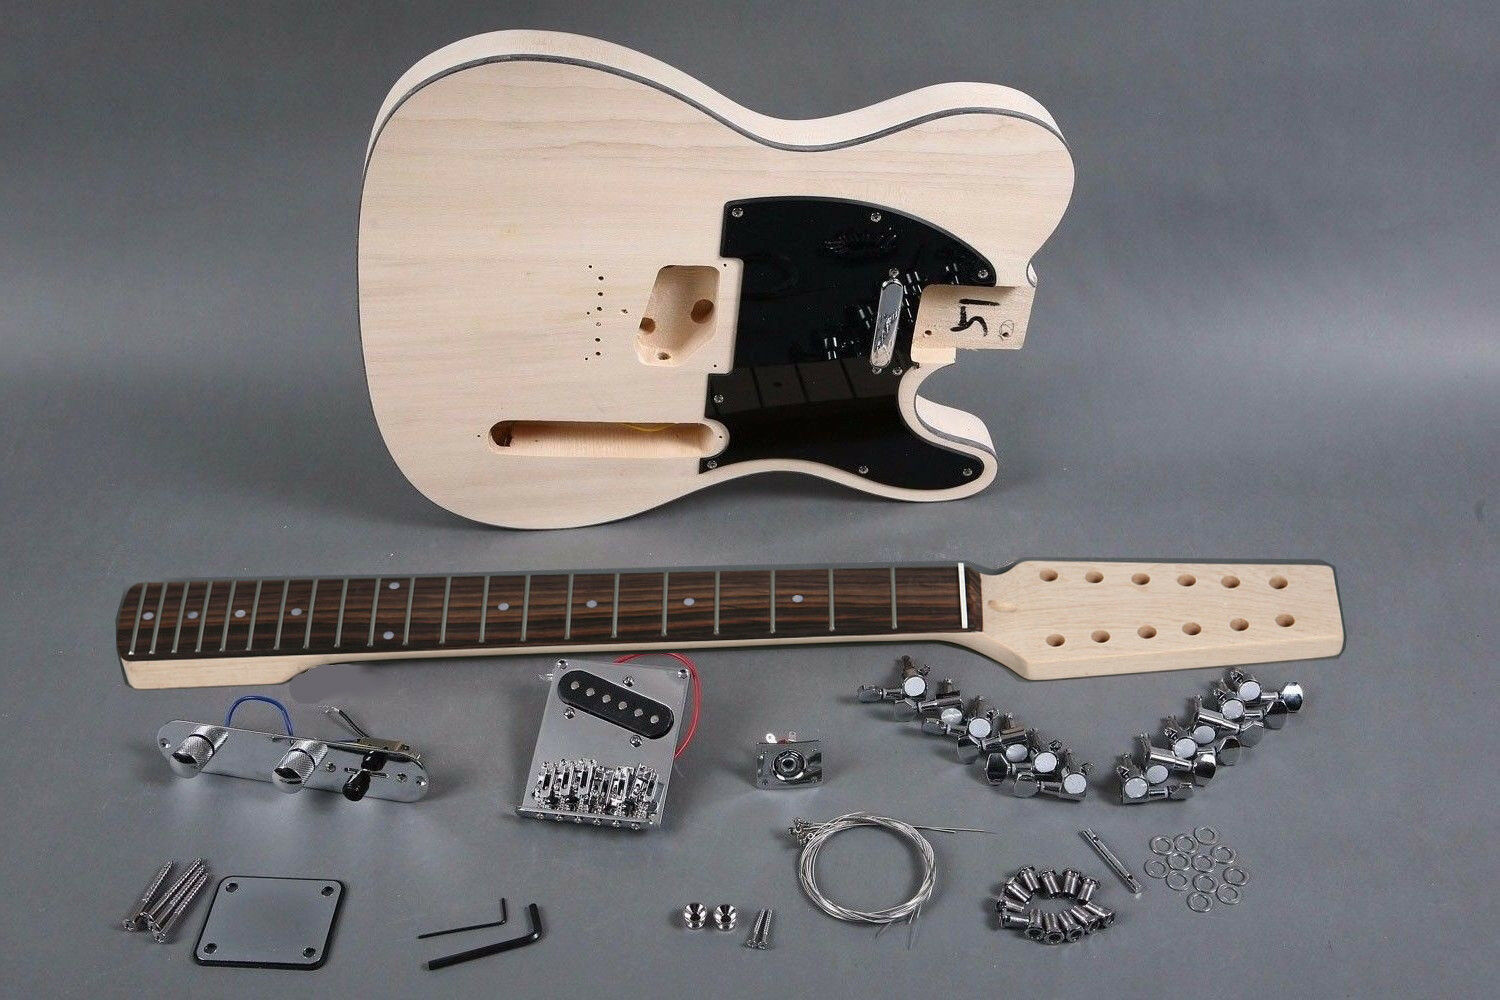 12 String DIY Tele Style Electric Guitar Luthier Project Builder